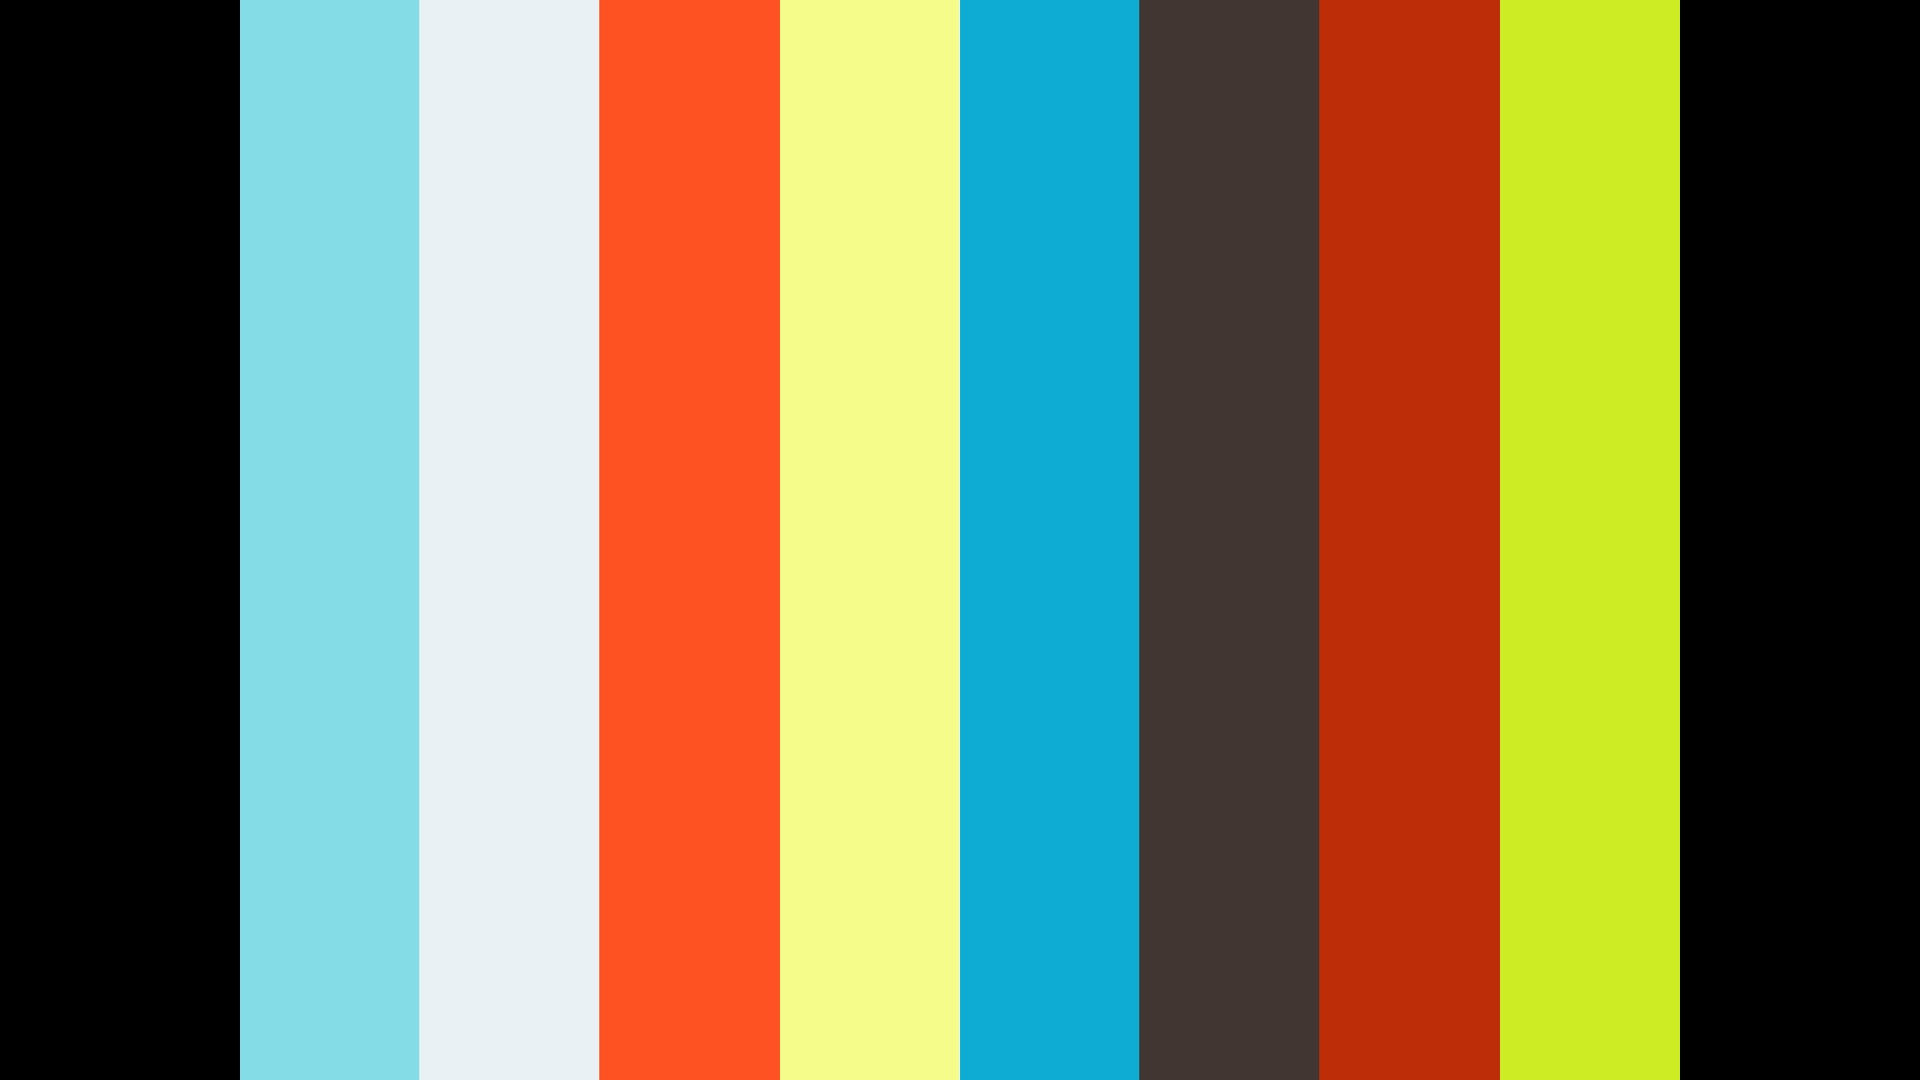 Can judges be trusted with the constitution?